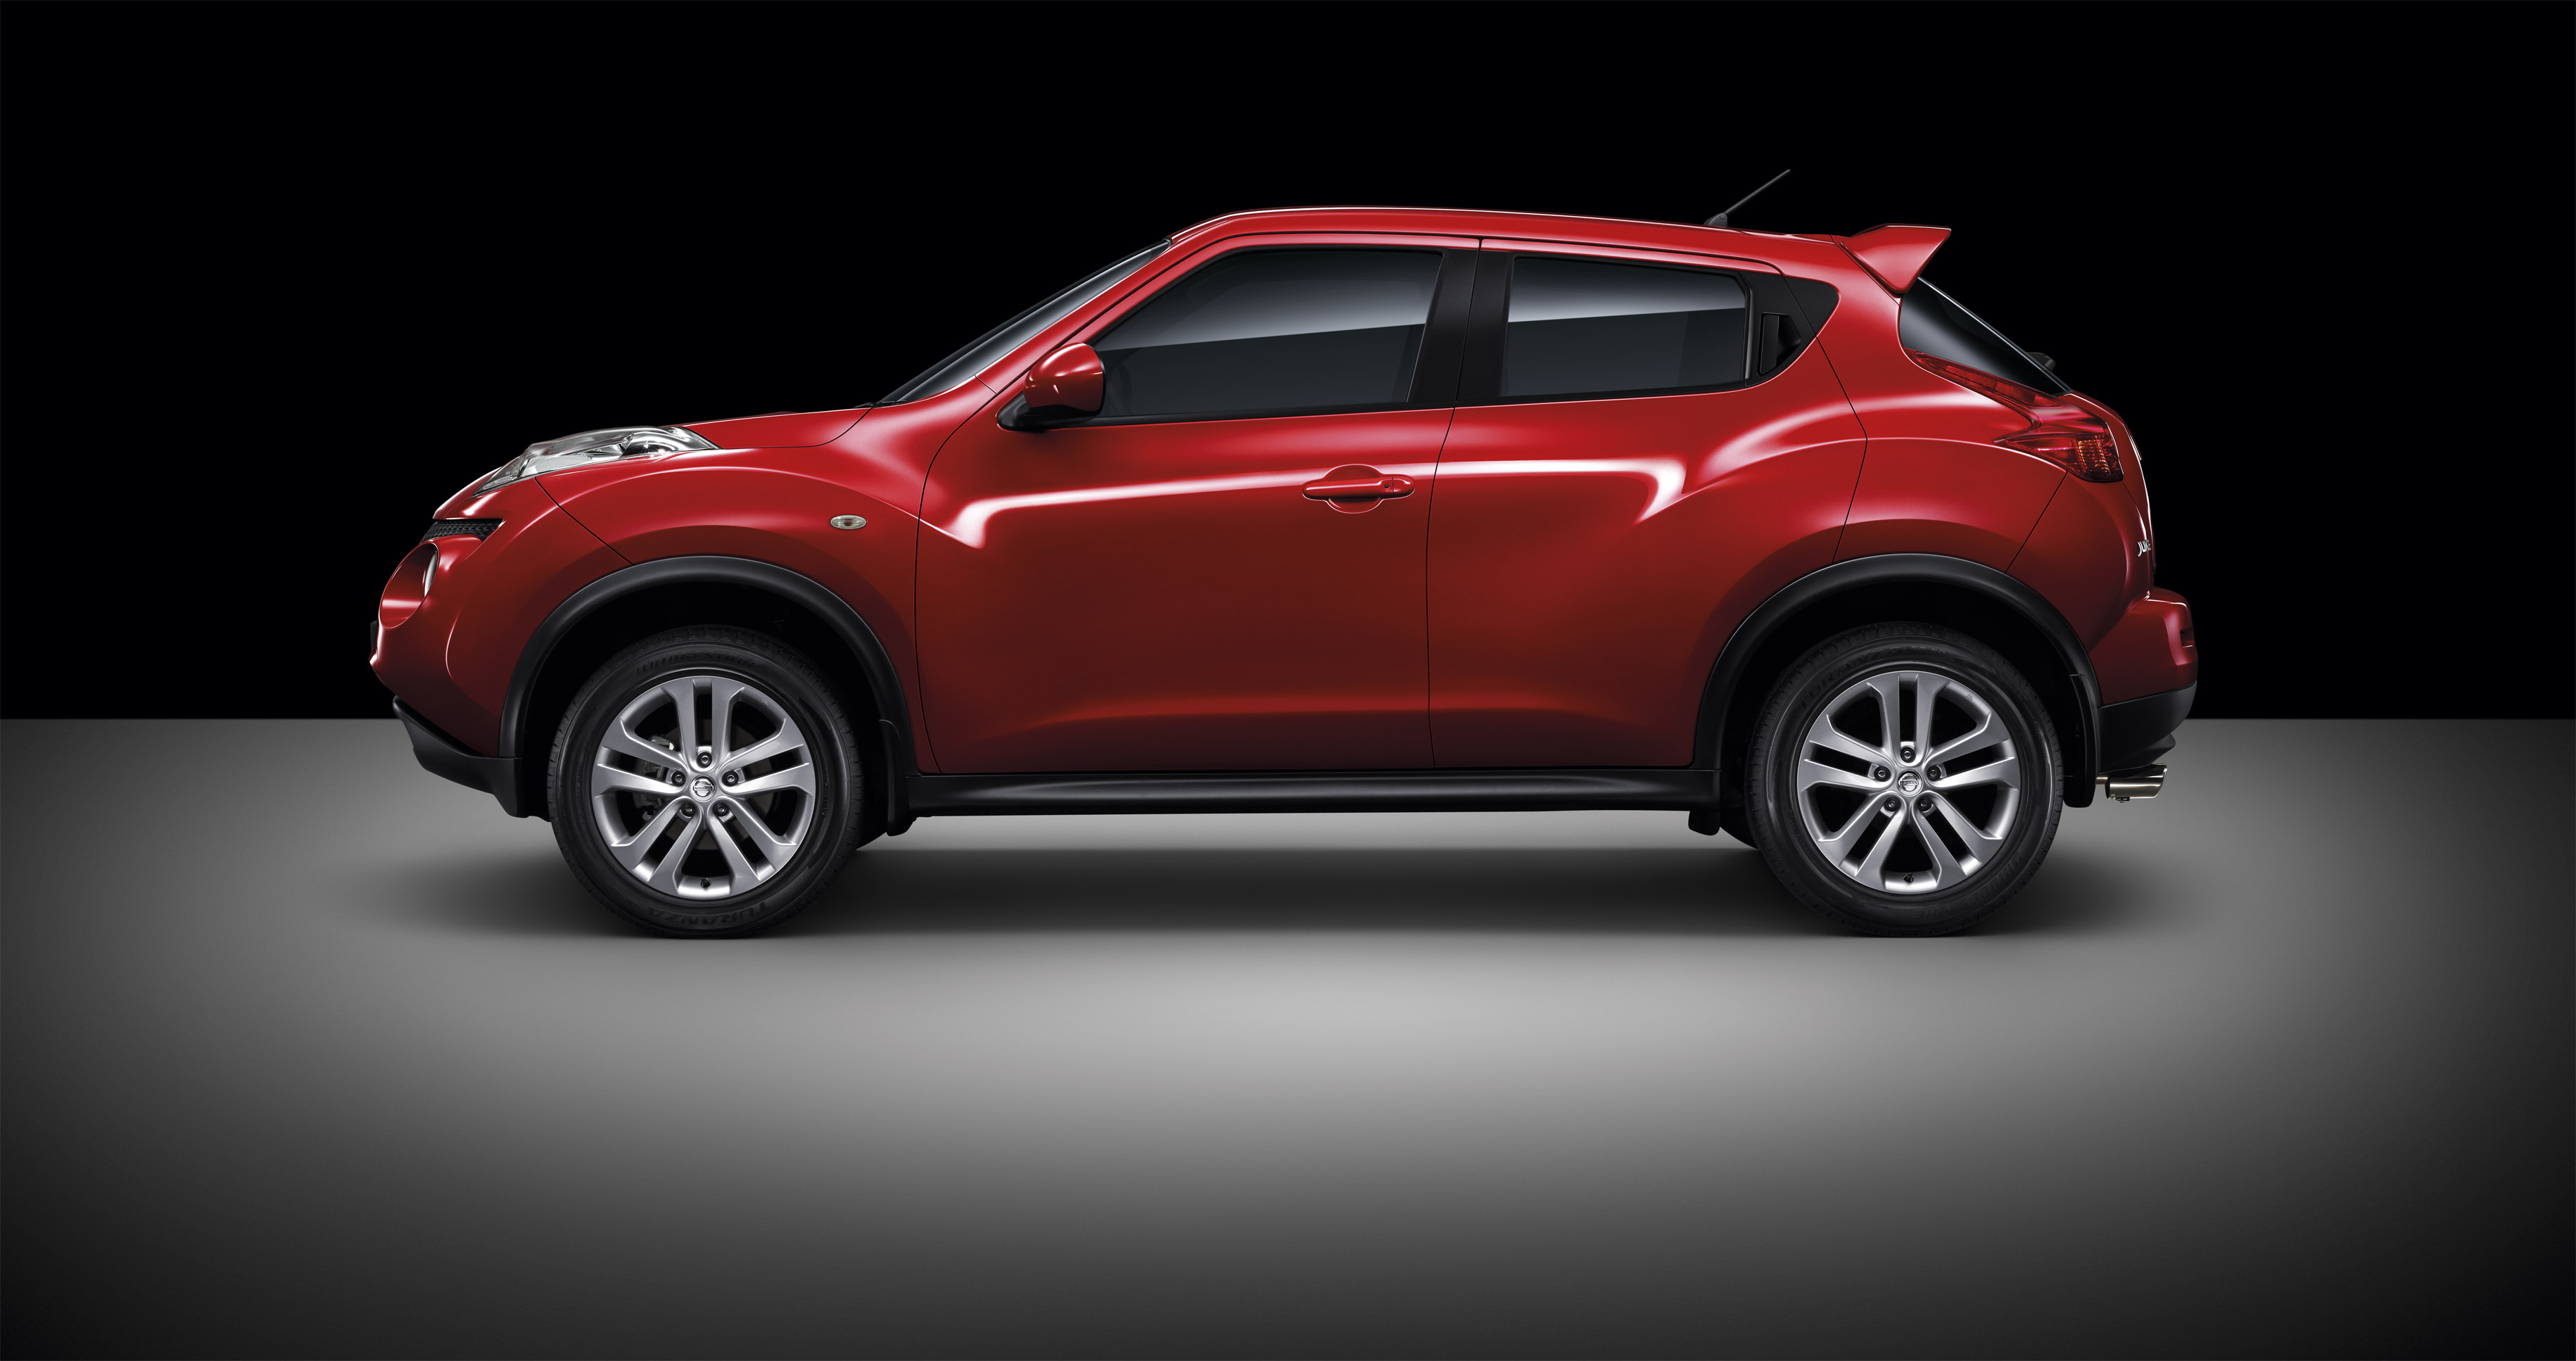 Nissan Juke The Iconic Compact Sports Crossover Arrives